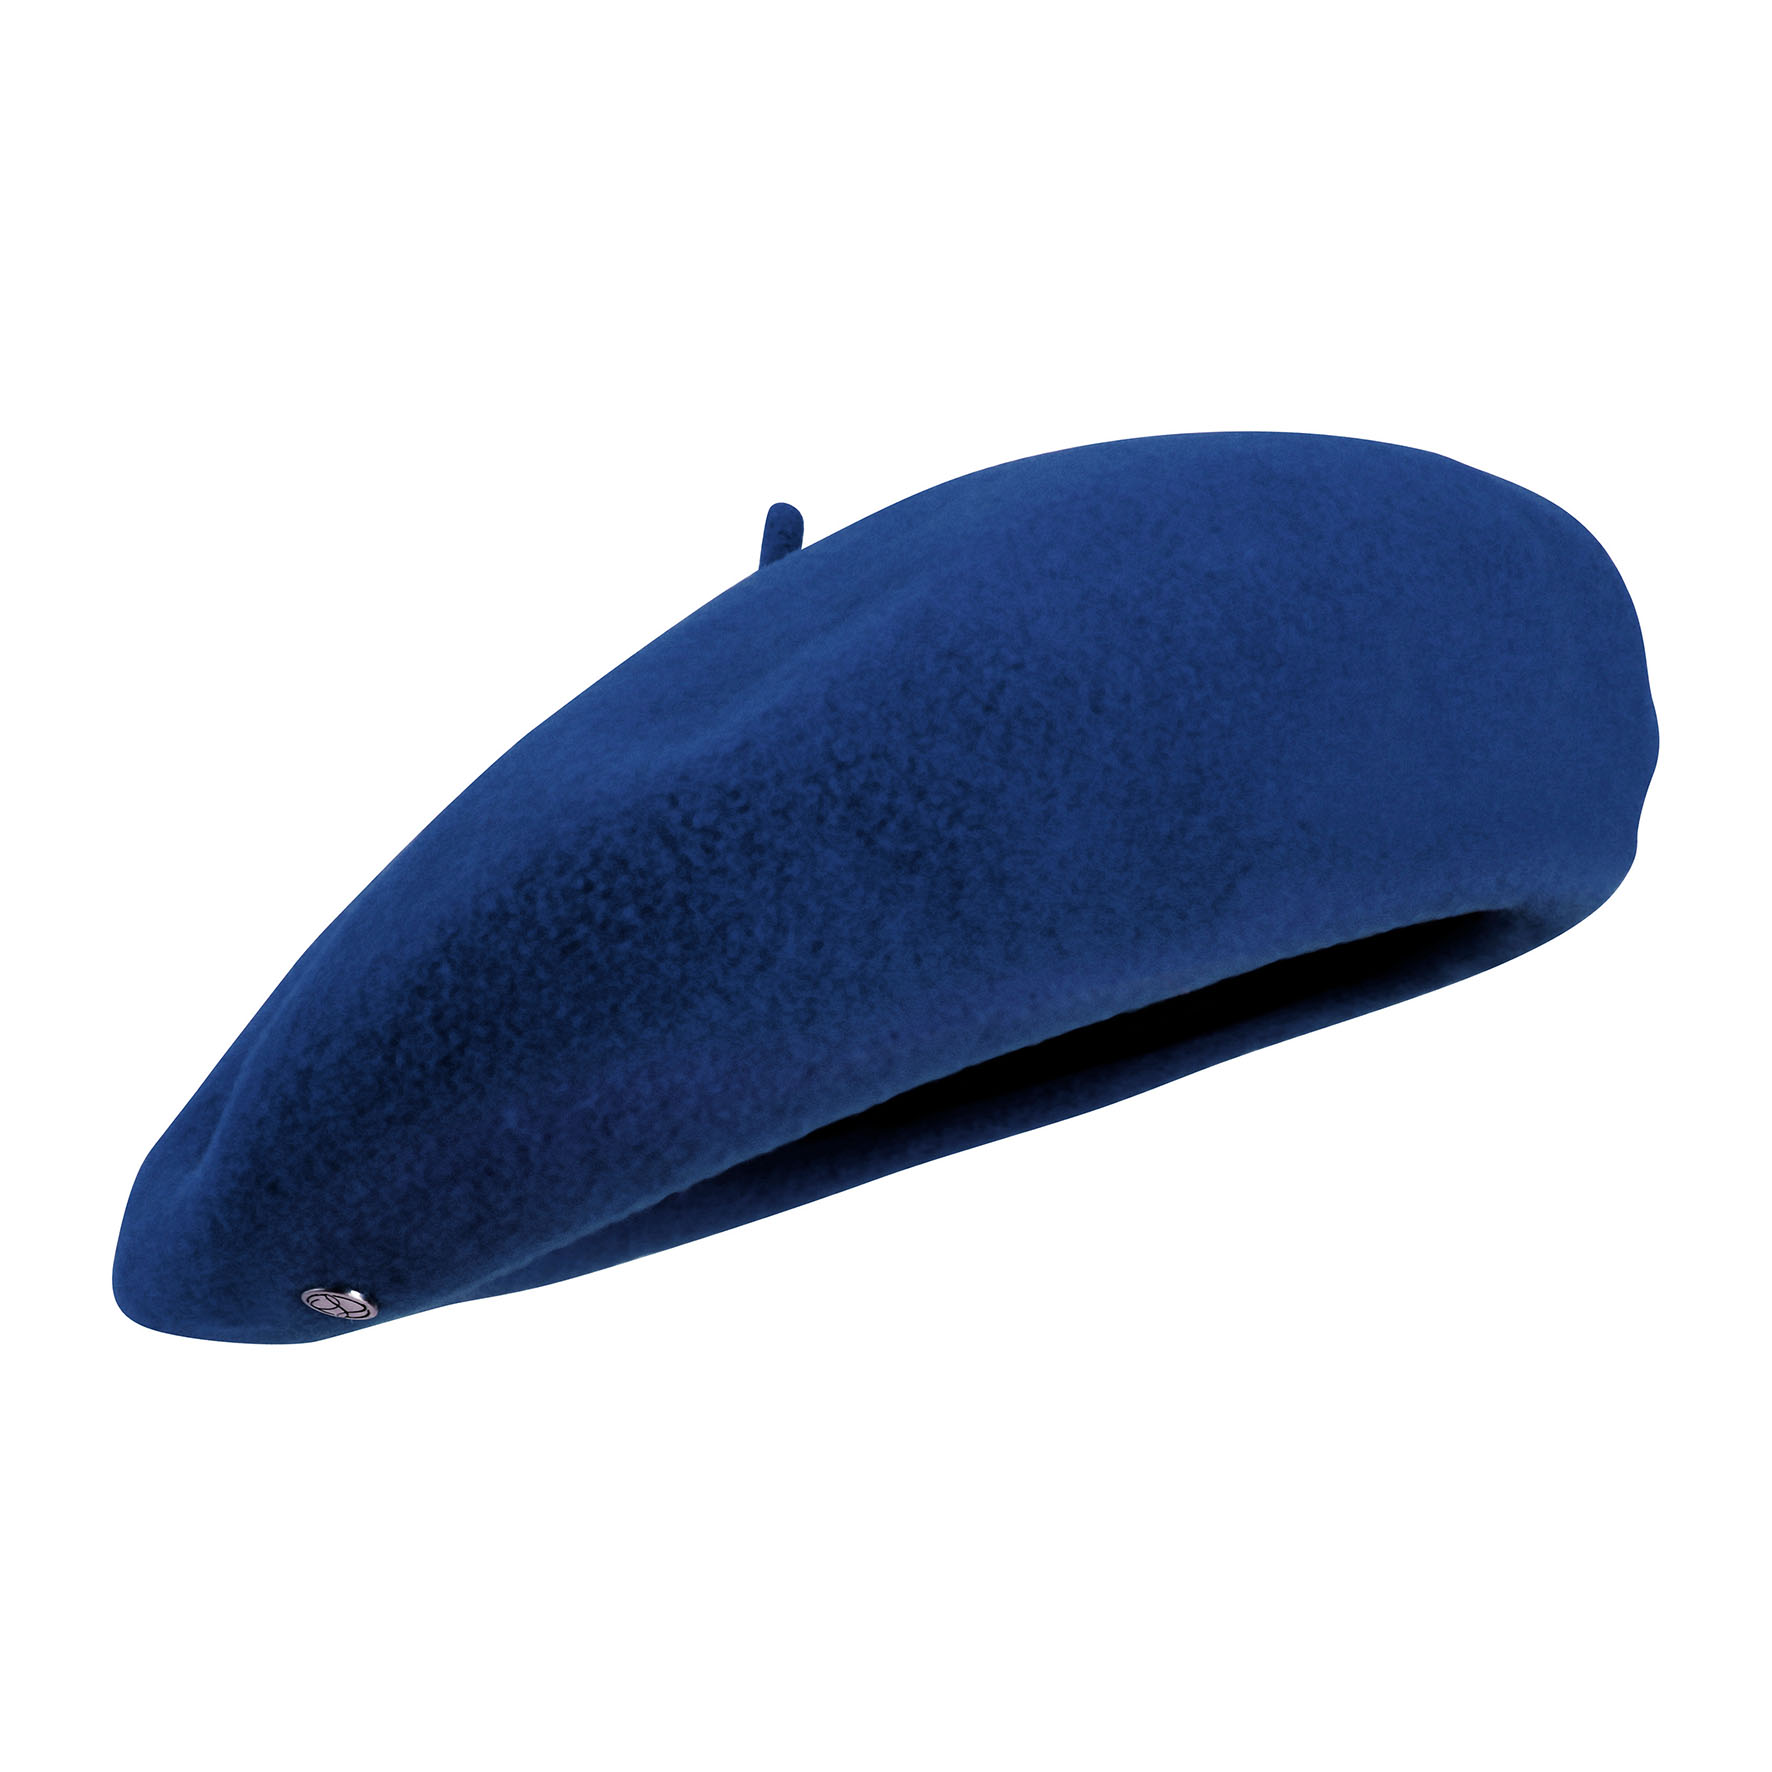 Laulhère Beret Authentique Royal Blue